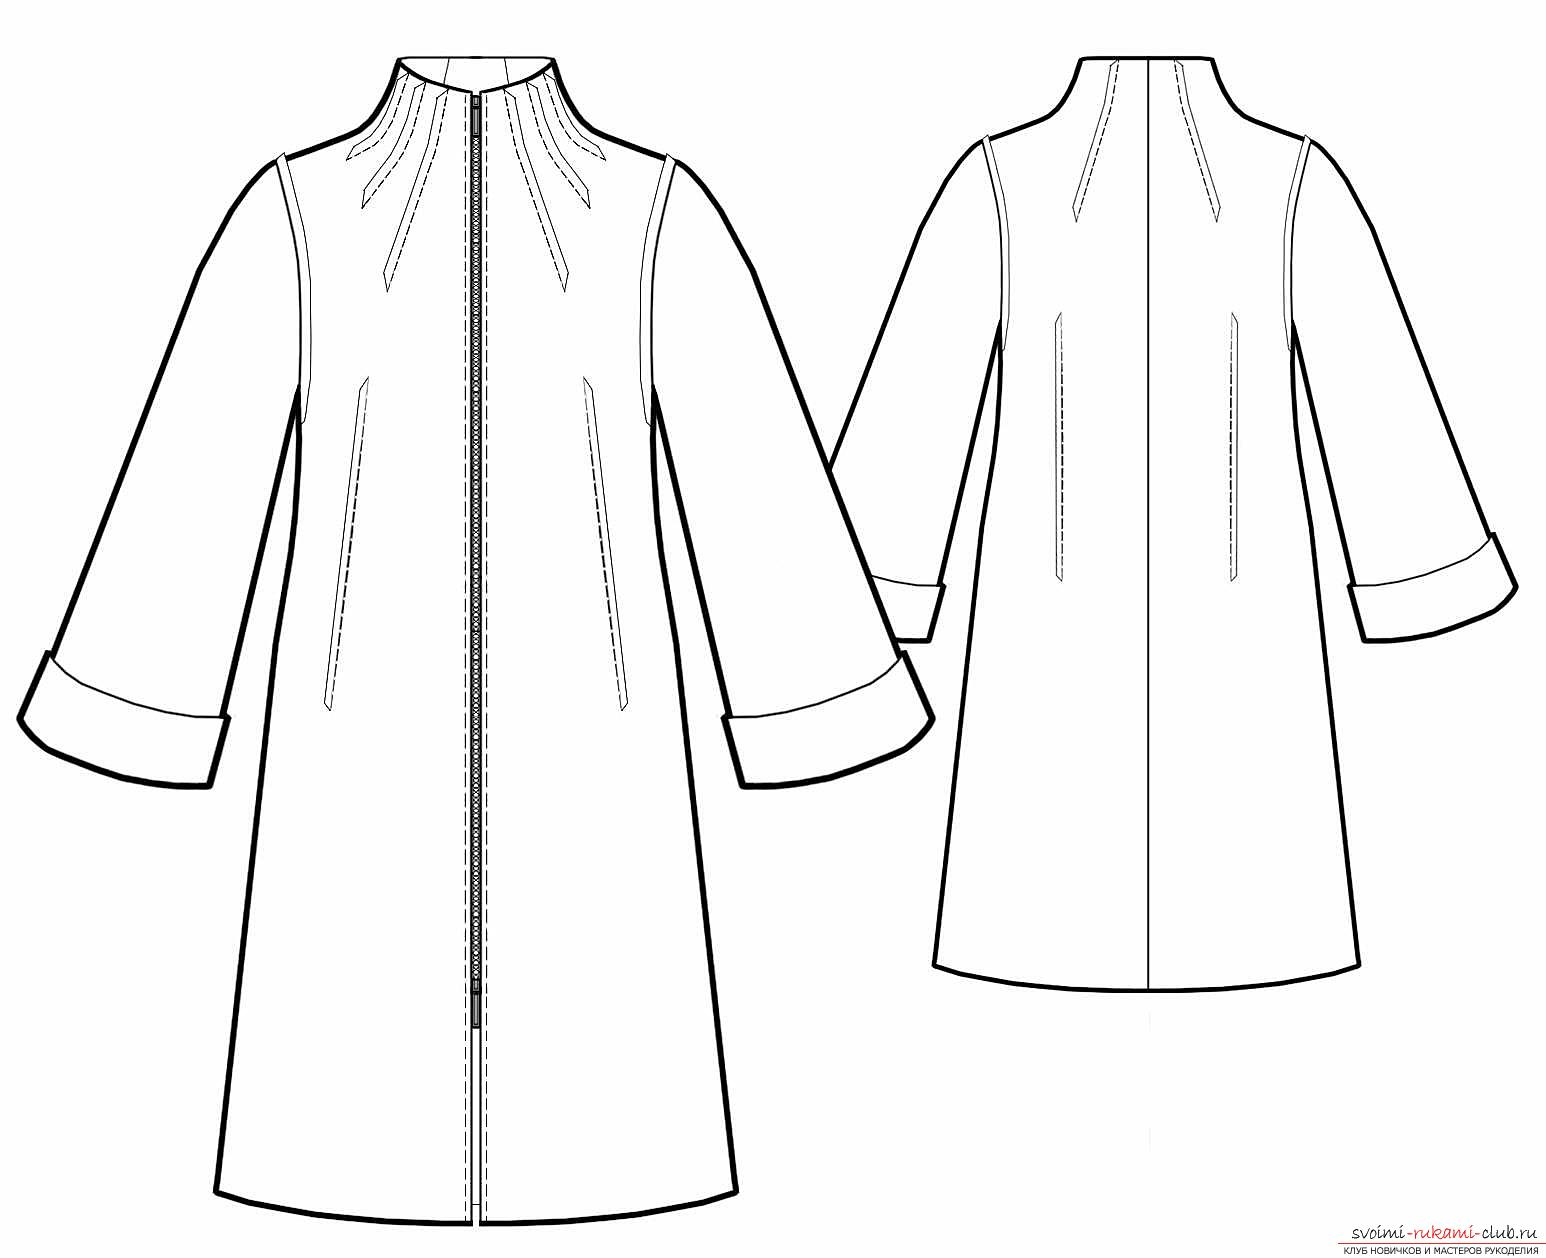 How to carve and sew a coat with a one-piece sleeve. Photo №4